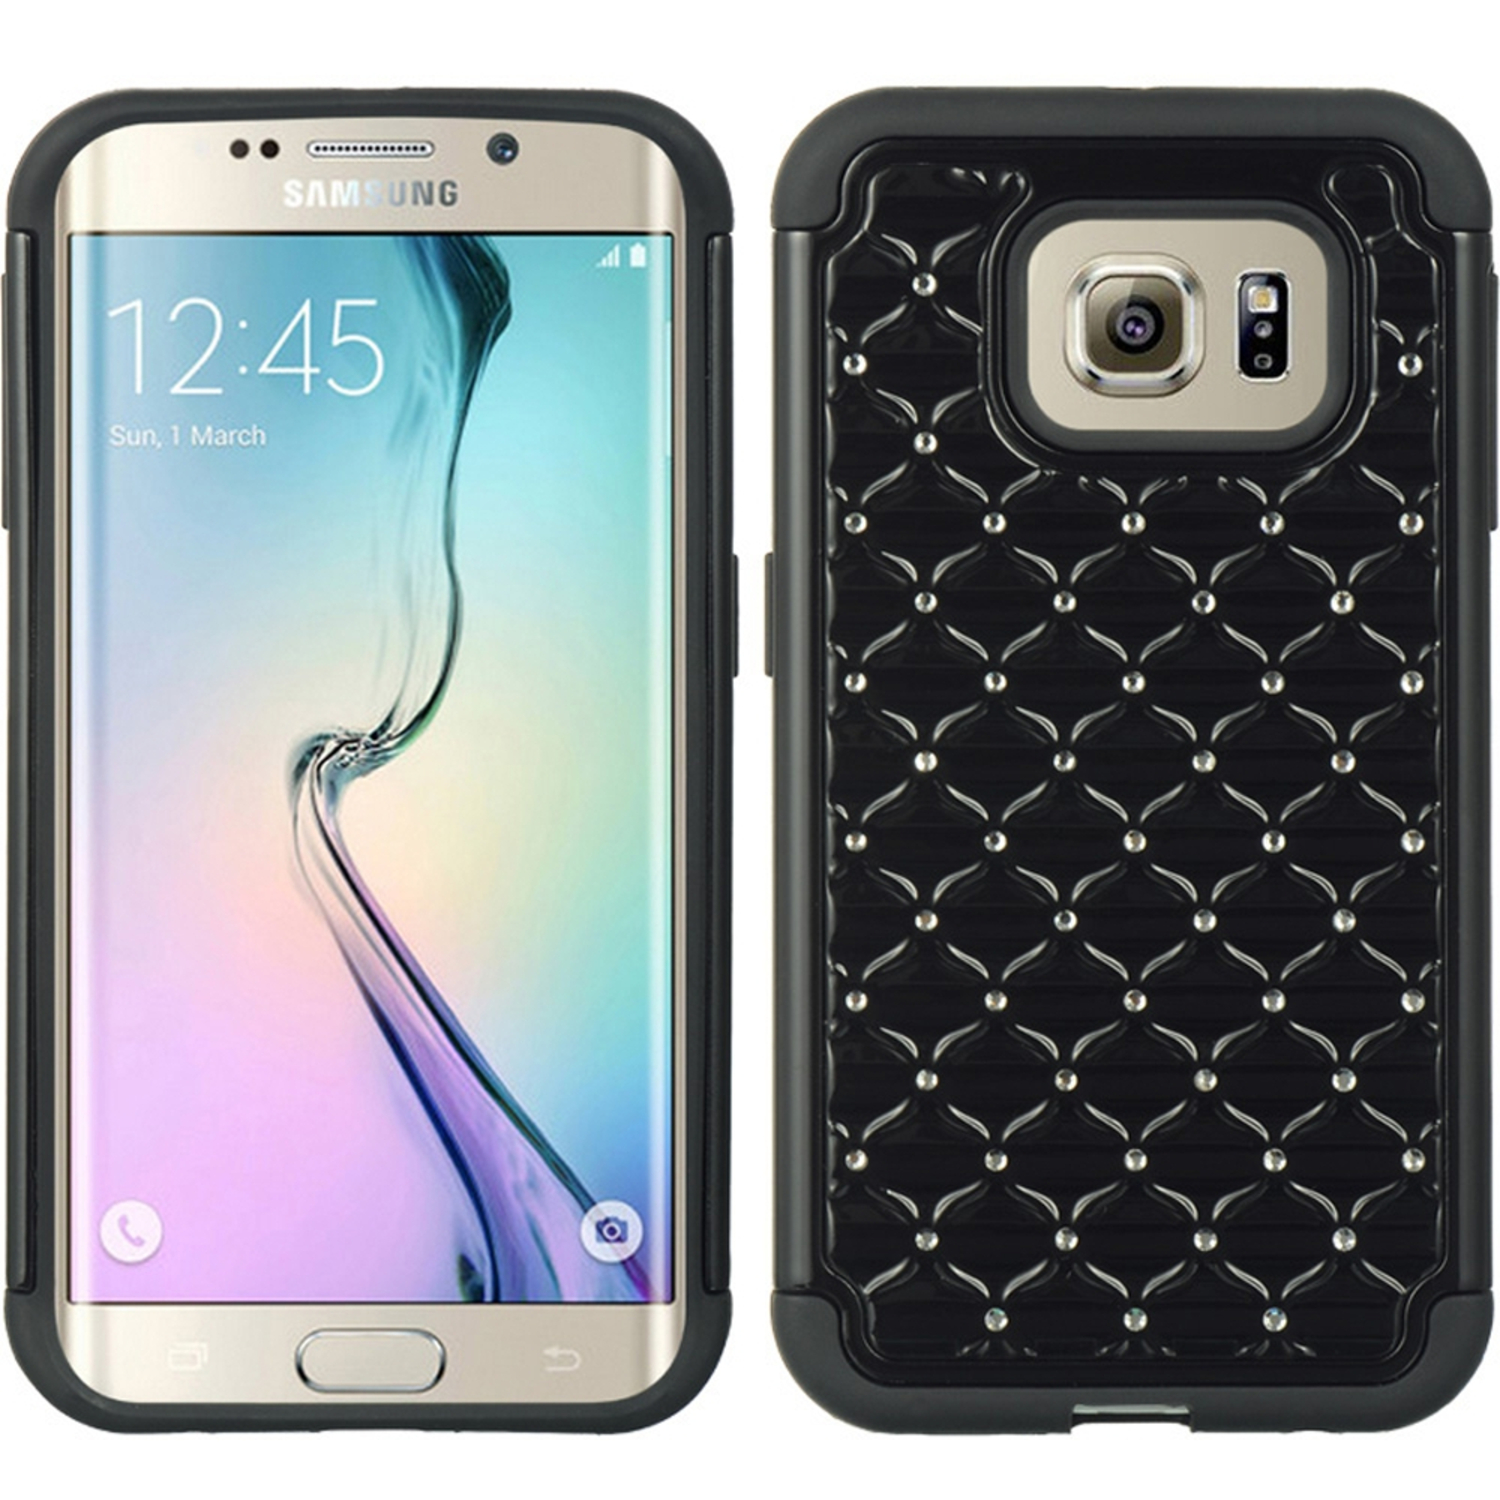 Samsung Galaxy S6 Edge Case, by Insten Dual Layer [Shock Absorbing] Hybrid Hard Plastic/Soft TPU Rubber Case Cover With Diamond For Samsung Galaxy S6 Edge